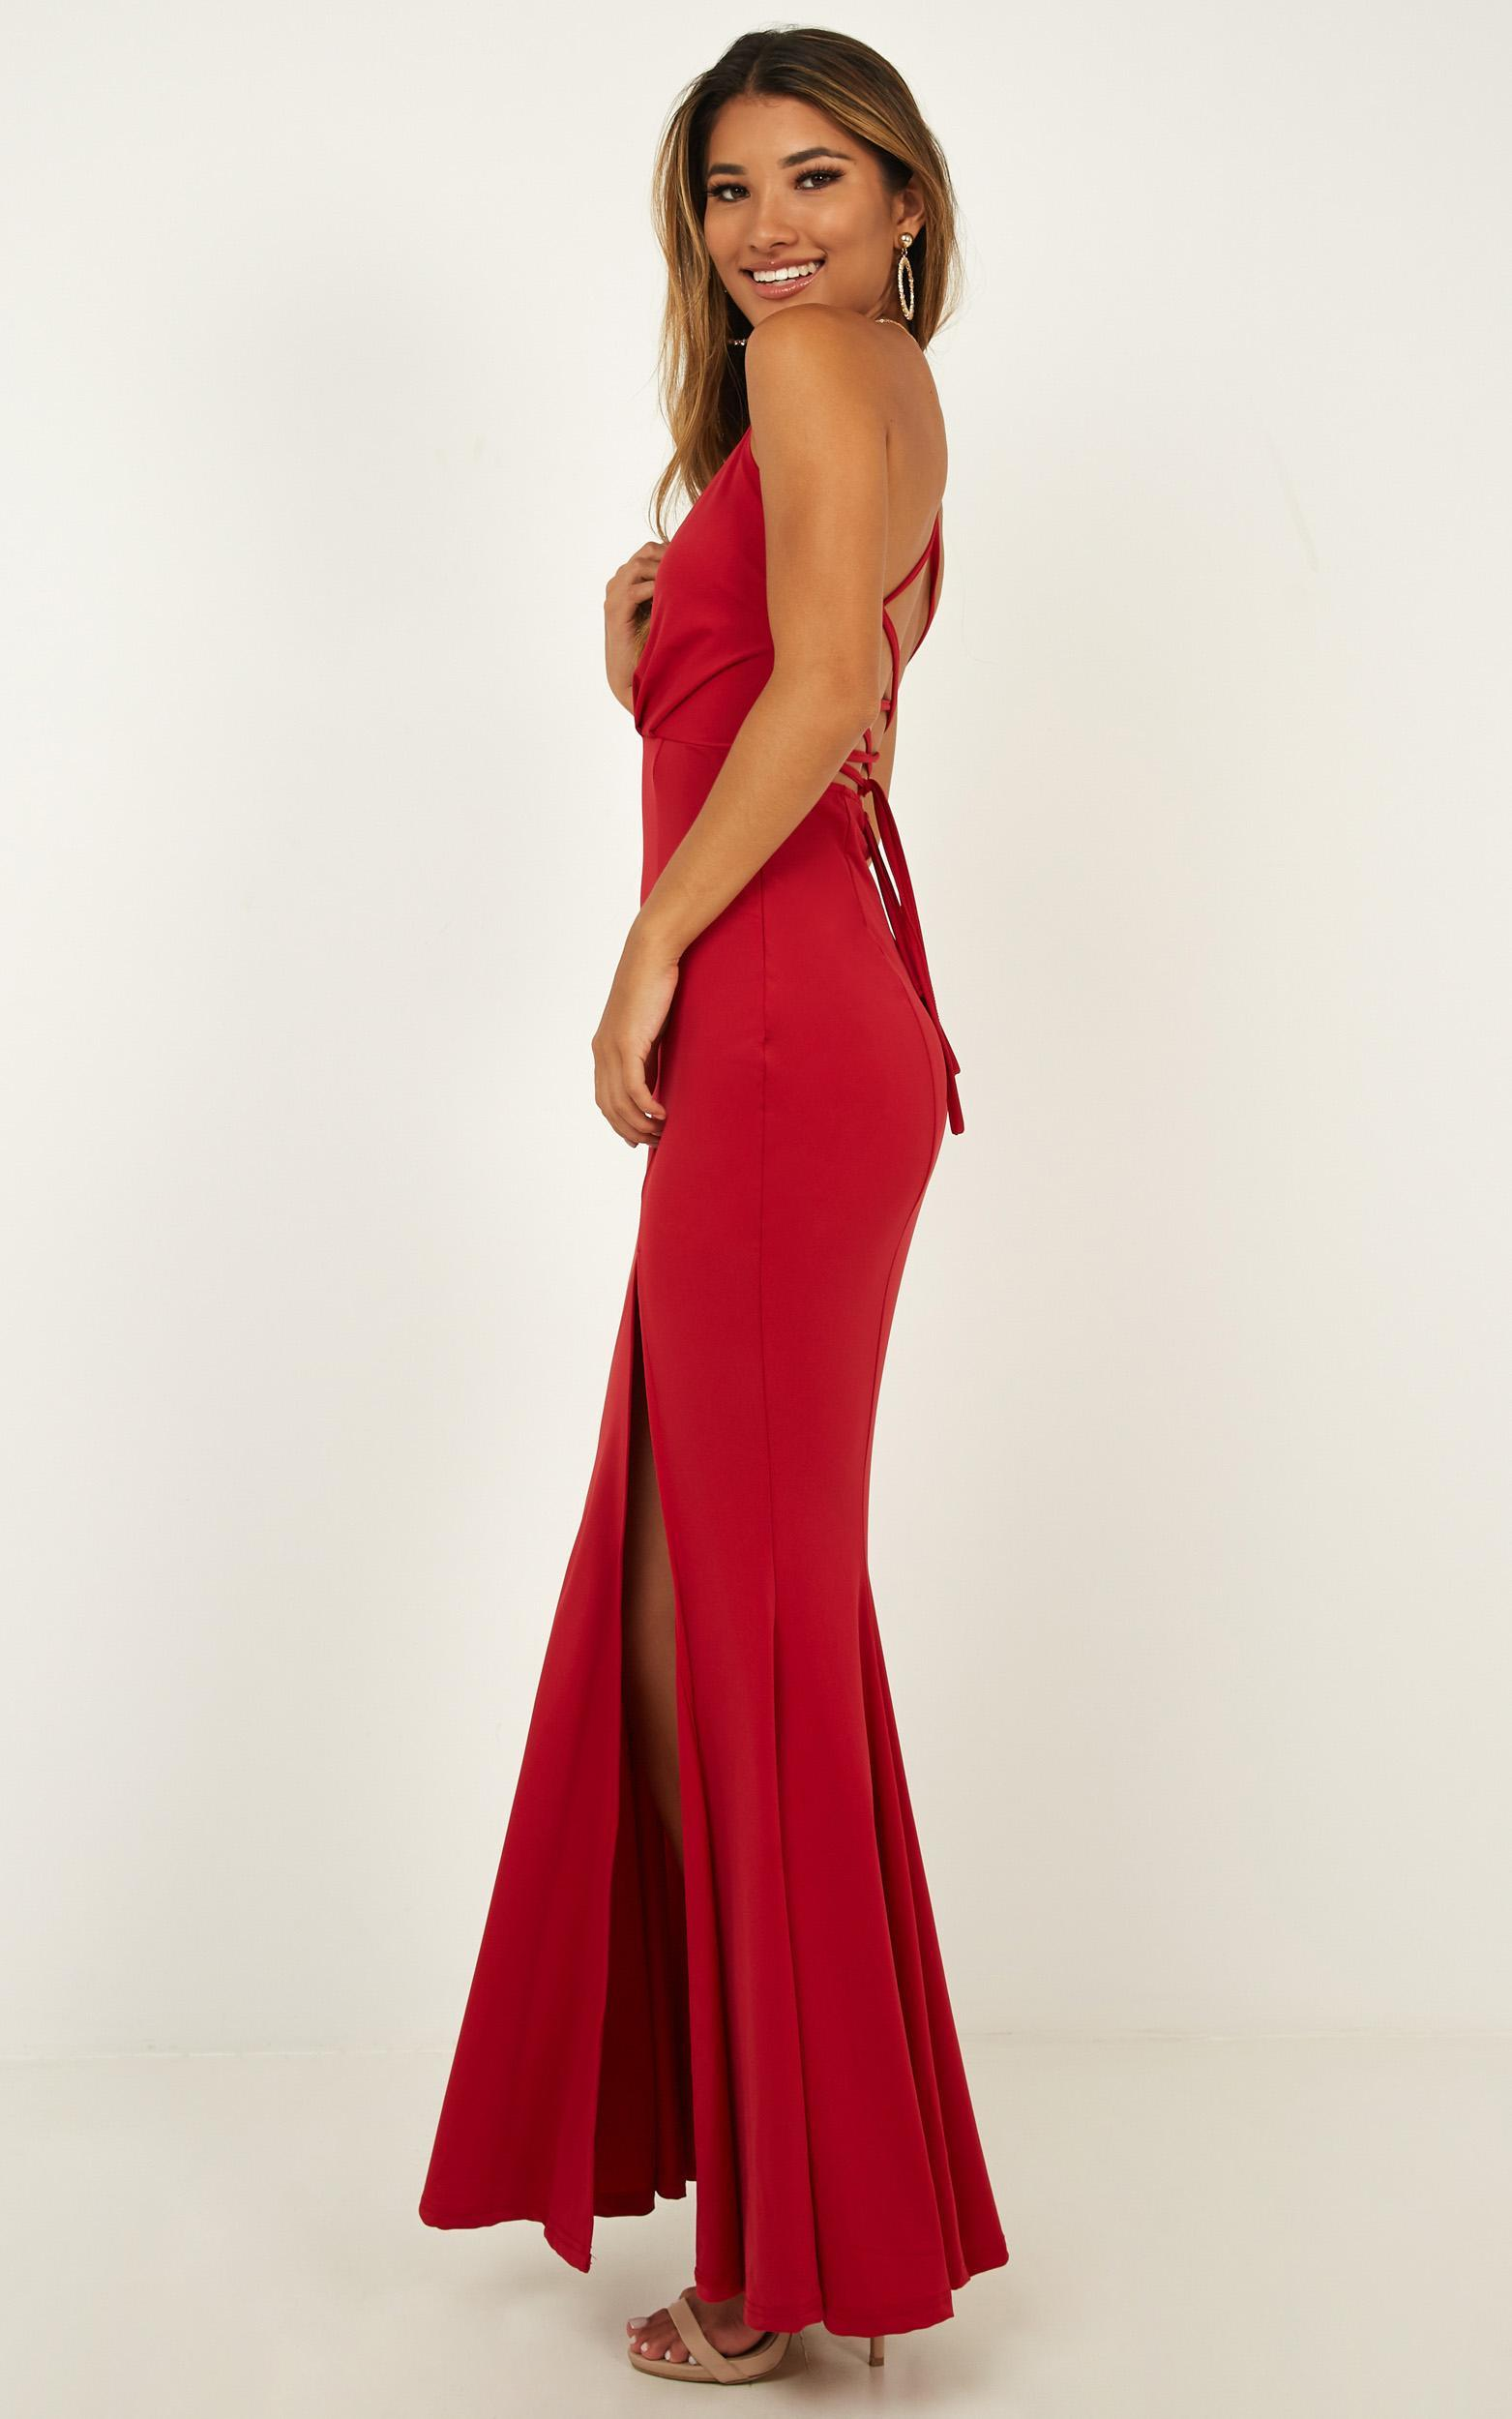 Storm Soul Maxi Dress In red - 20 (XXXXL), Red, hi-res image number null